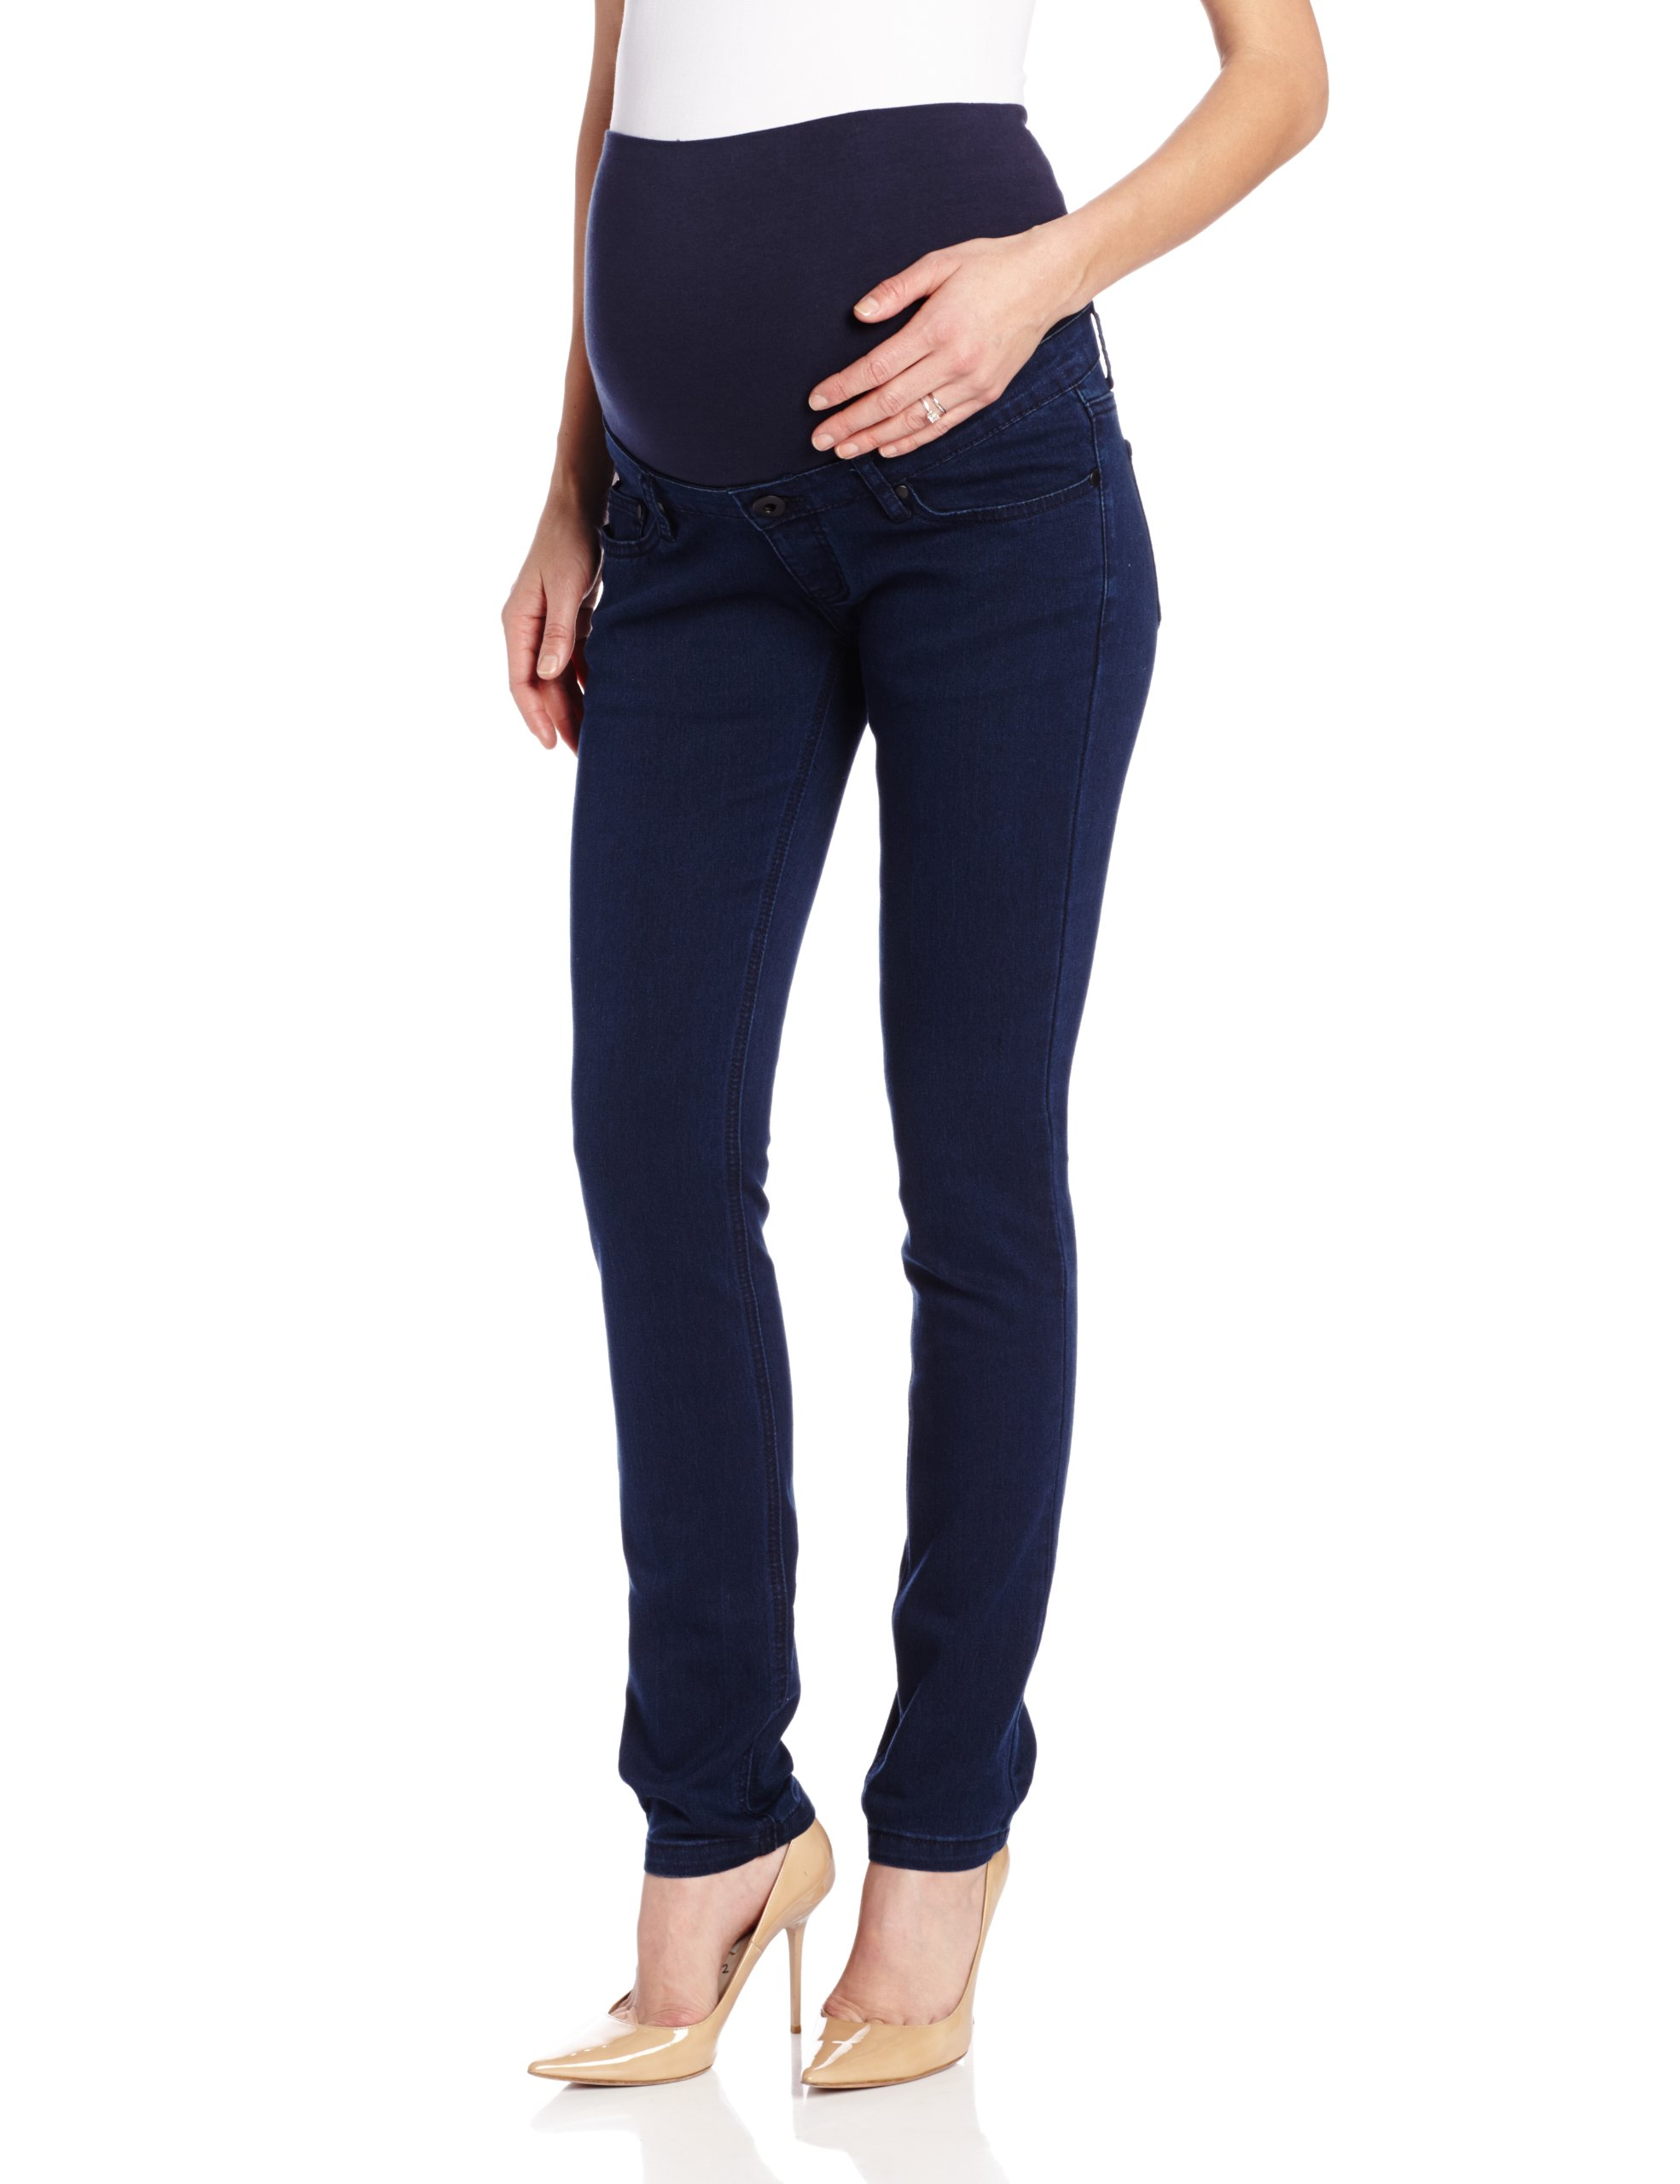 Ripe Maternity Women's Maternity Peggy Stretch Denim Skinny Jean,Blue,Small